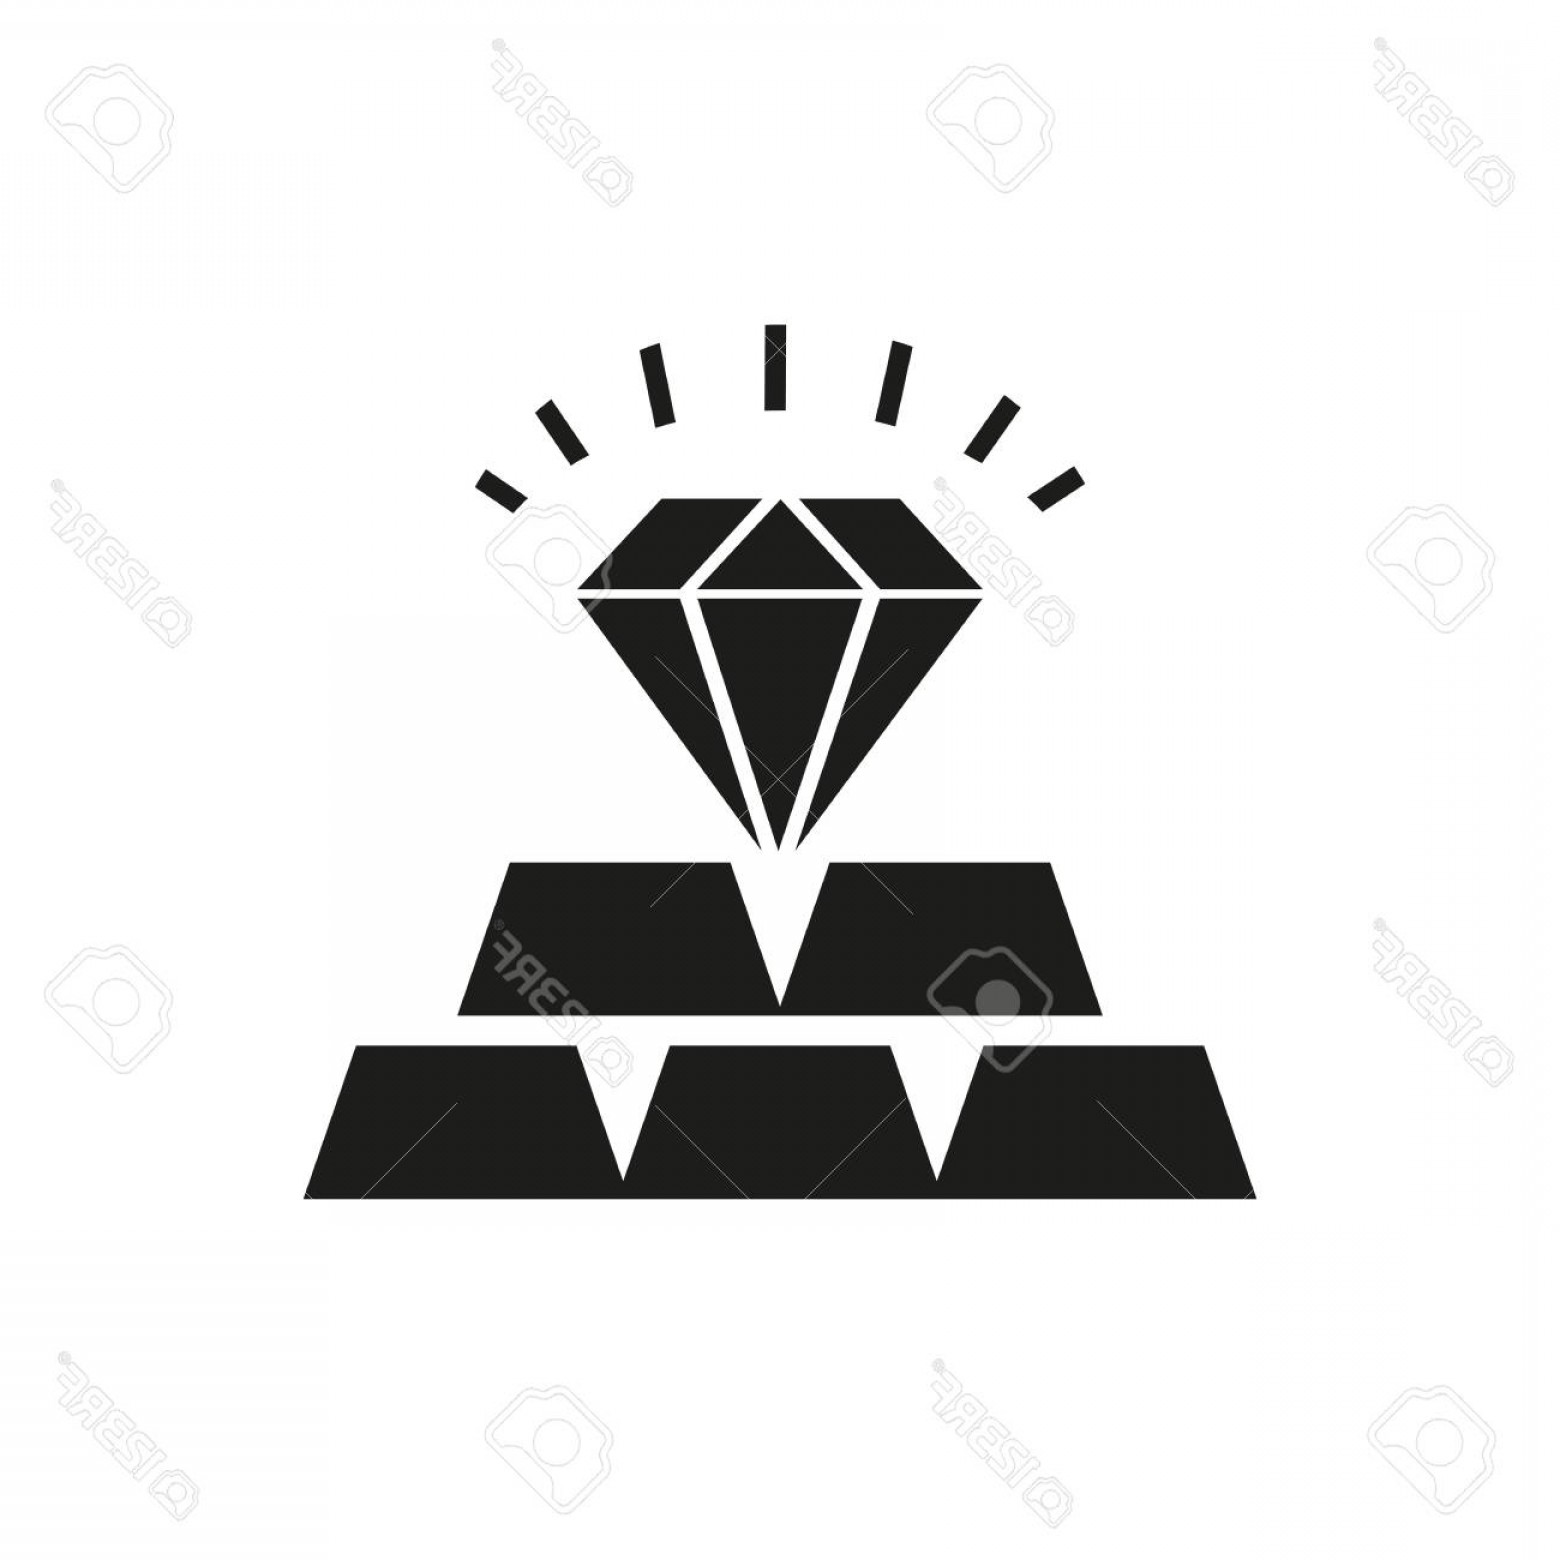 Jewelry Manufacturing Icon Vector: Photostock Vector Icon Of Commodities Investment Precious Metals Deposit Jewelry Banking Product Concept Can Be Used F